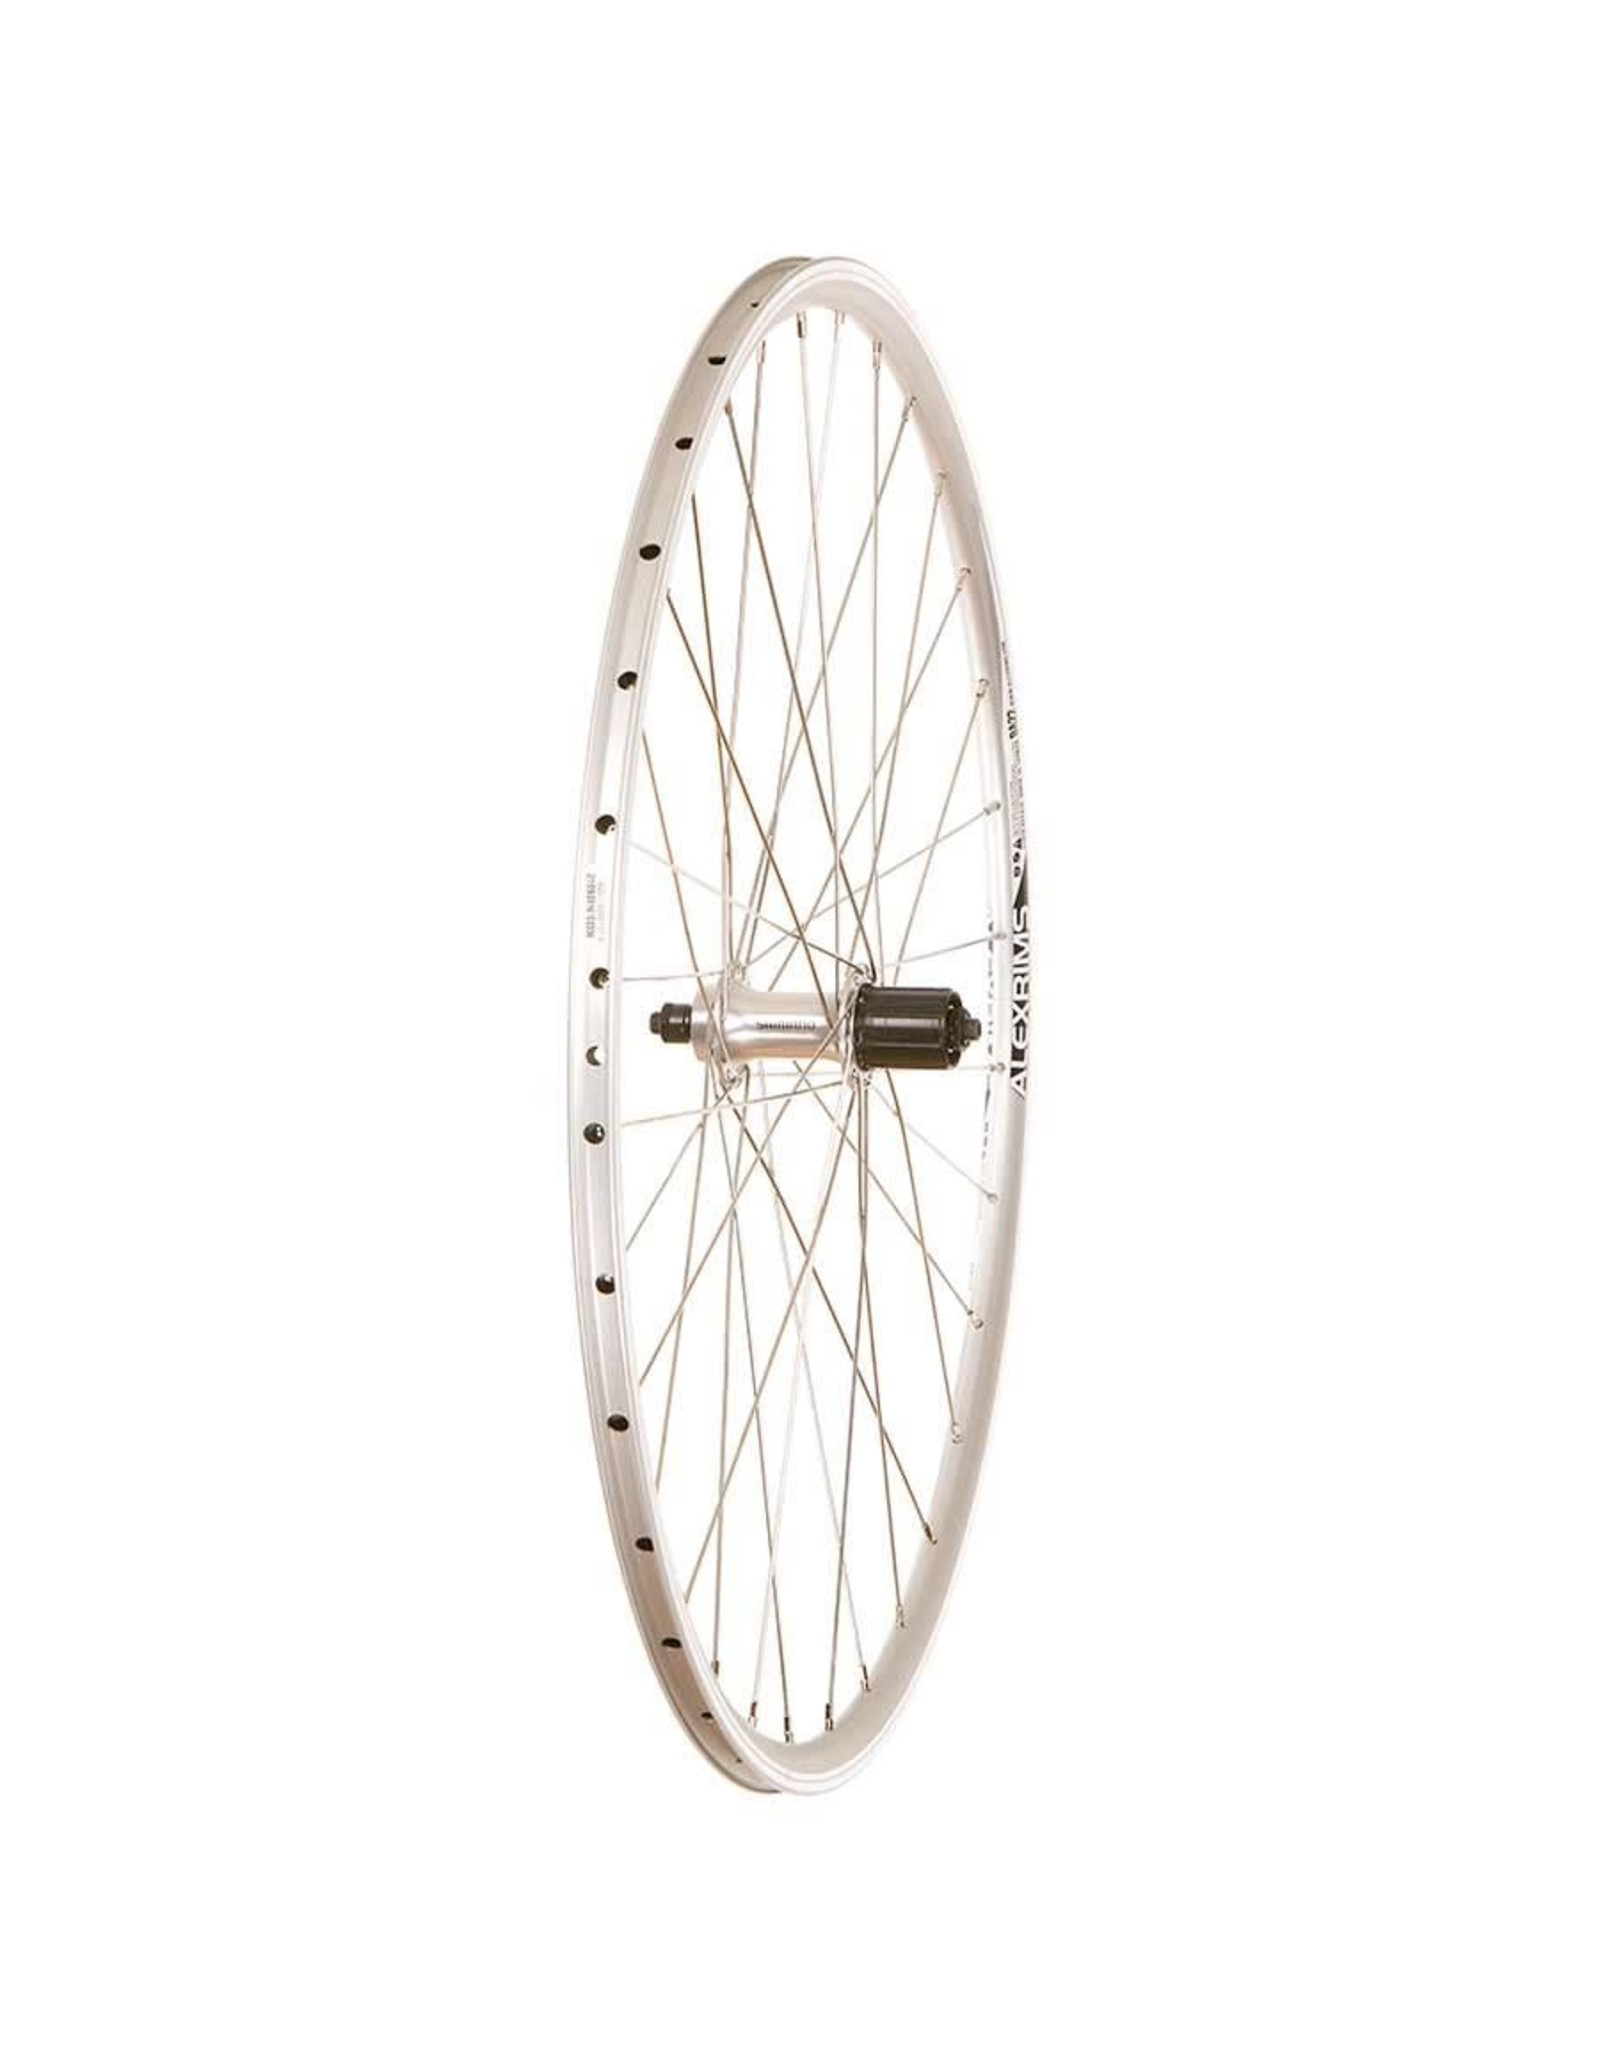 Wheel Shop Alex DA22 Argent/ Shimano RS300, 8,9,10 vit